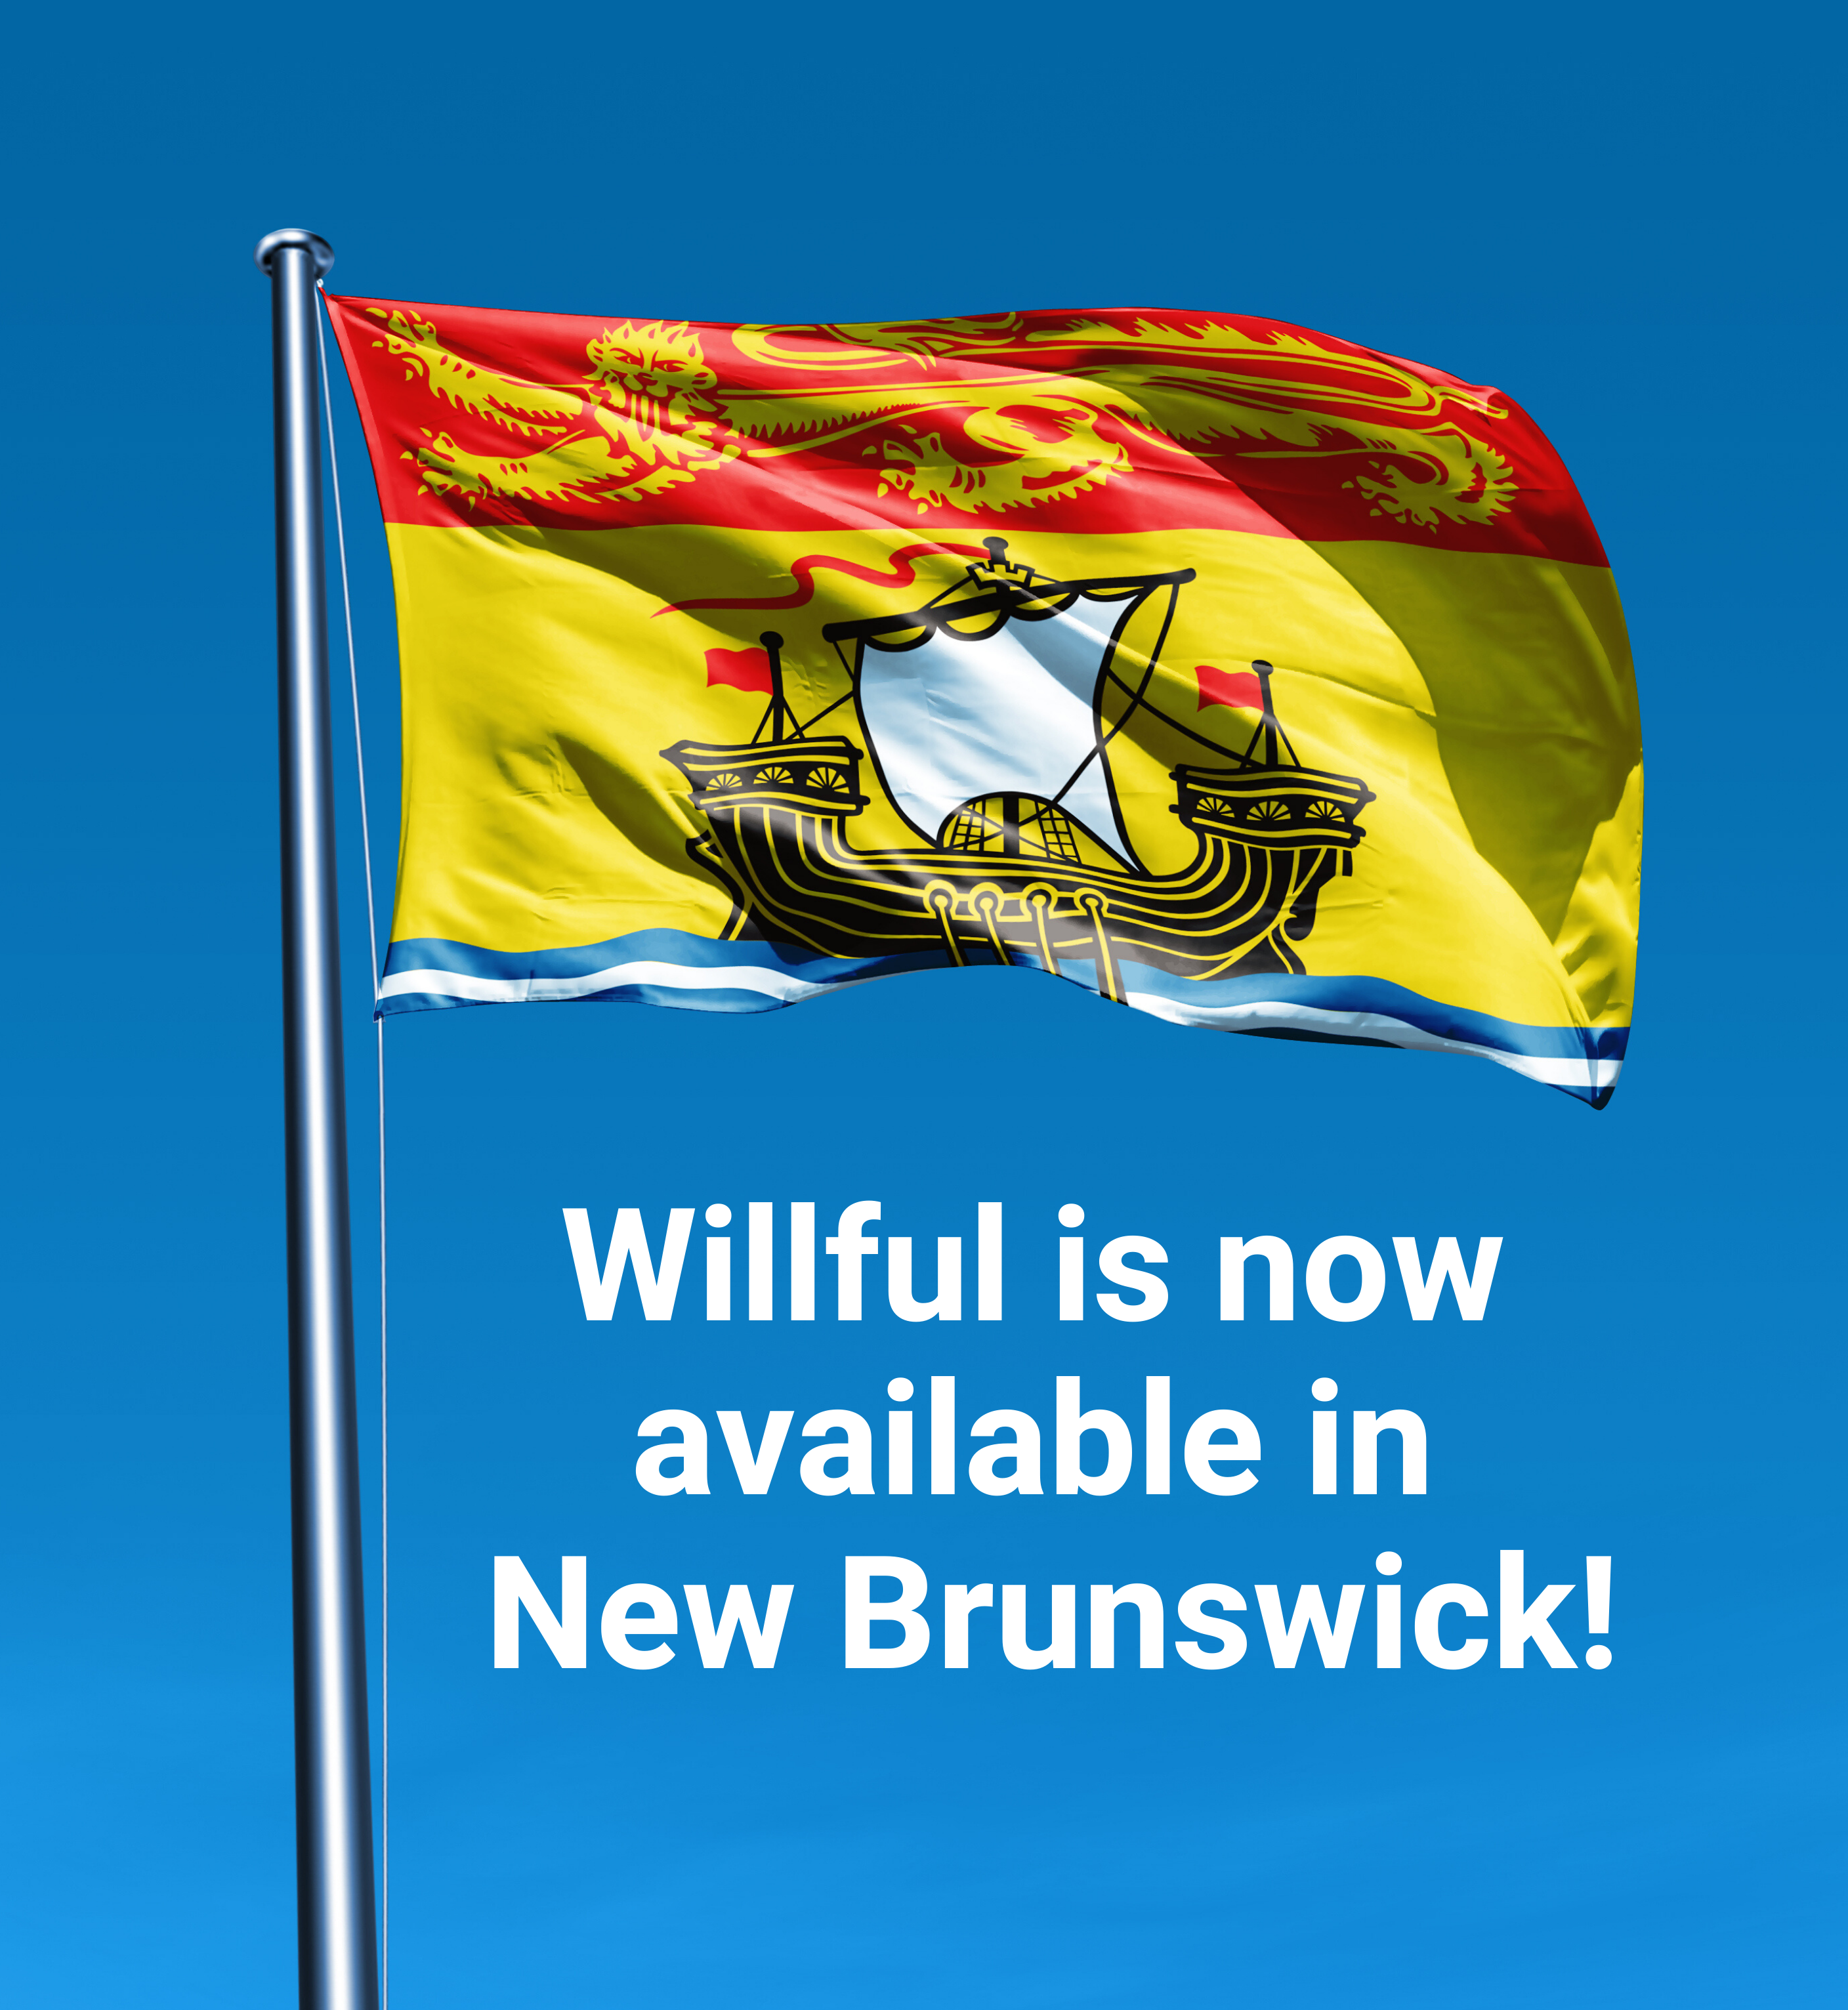 Willful is now available in New Brunswick!